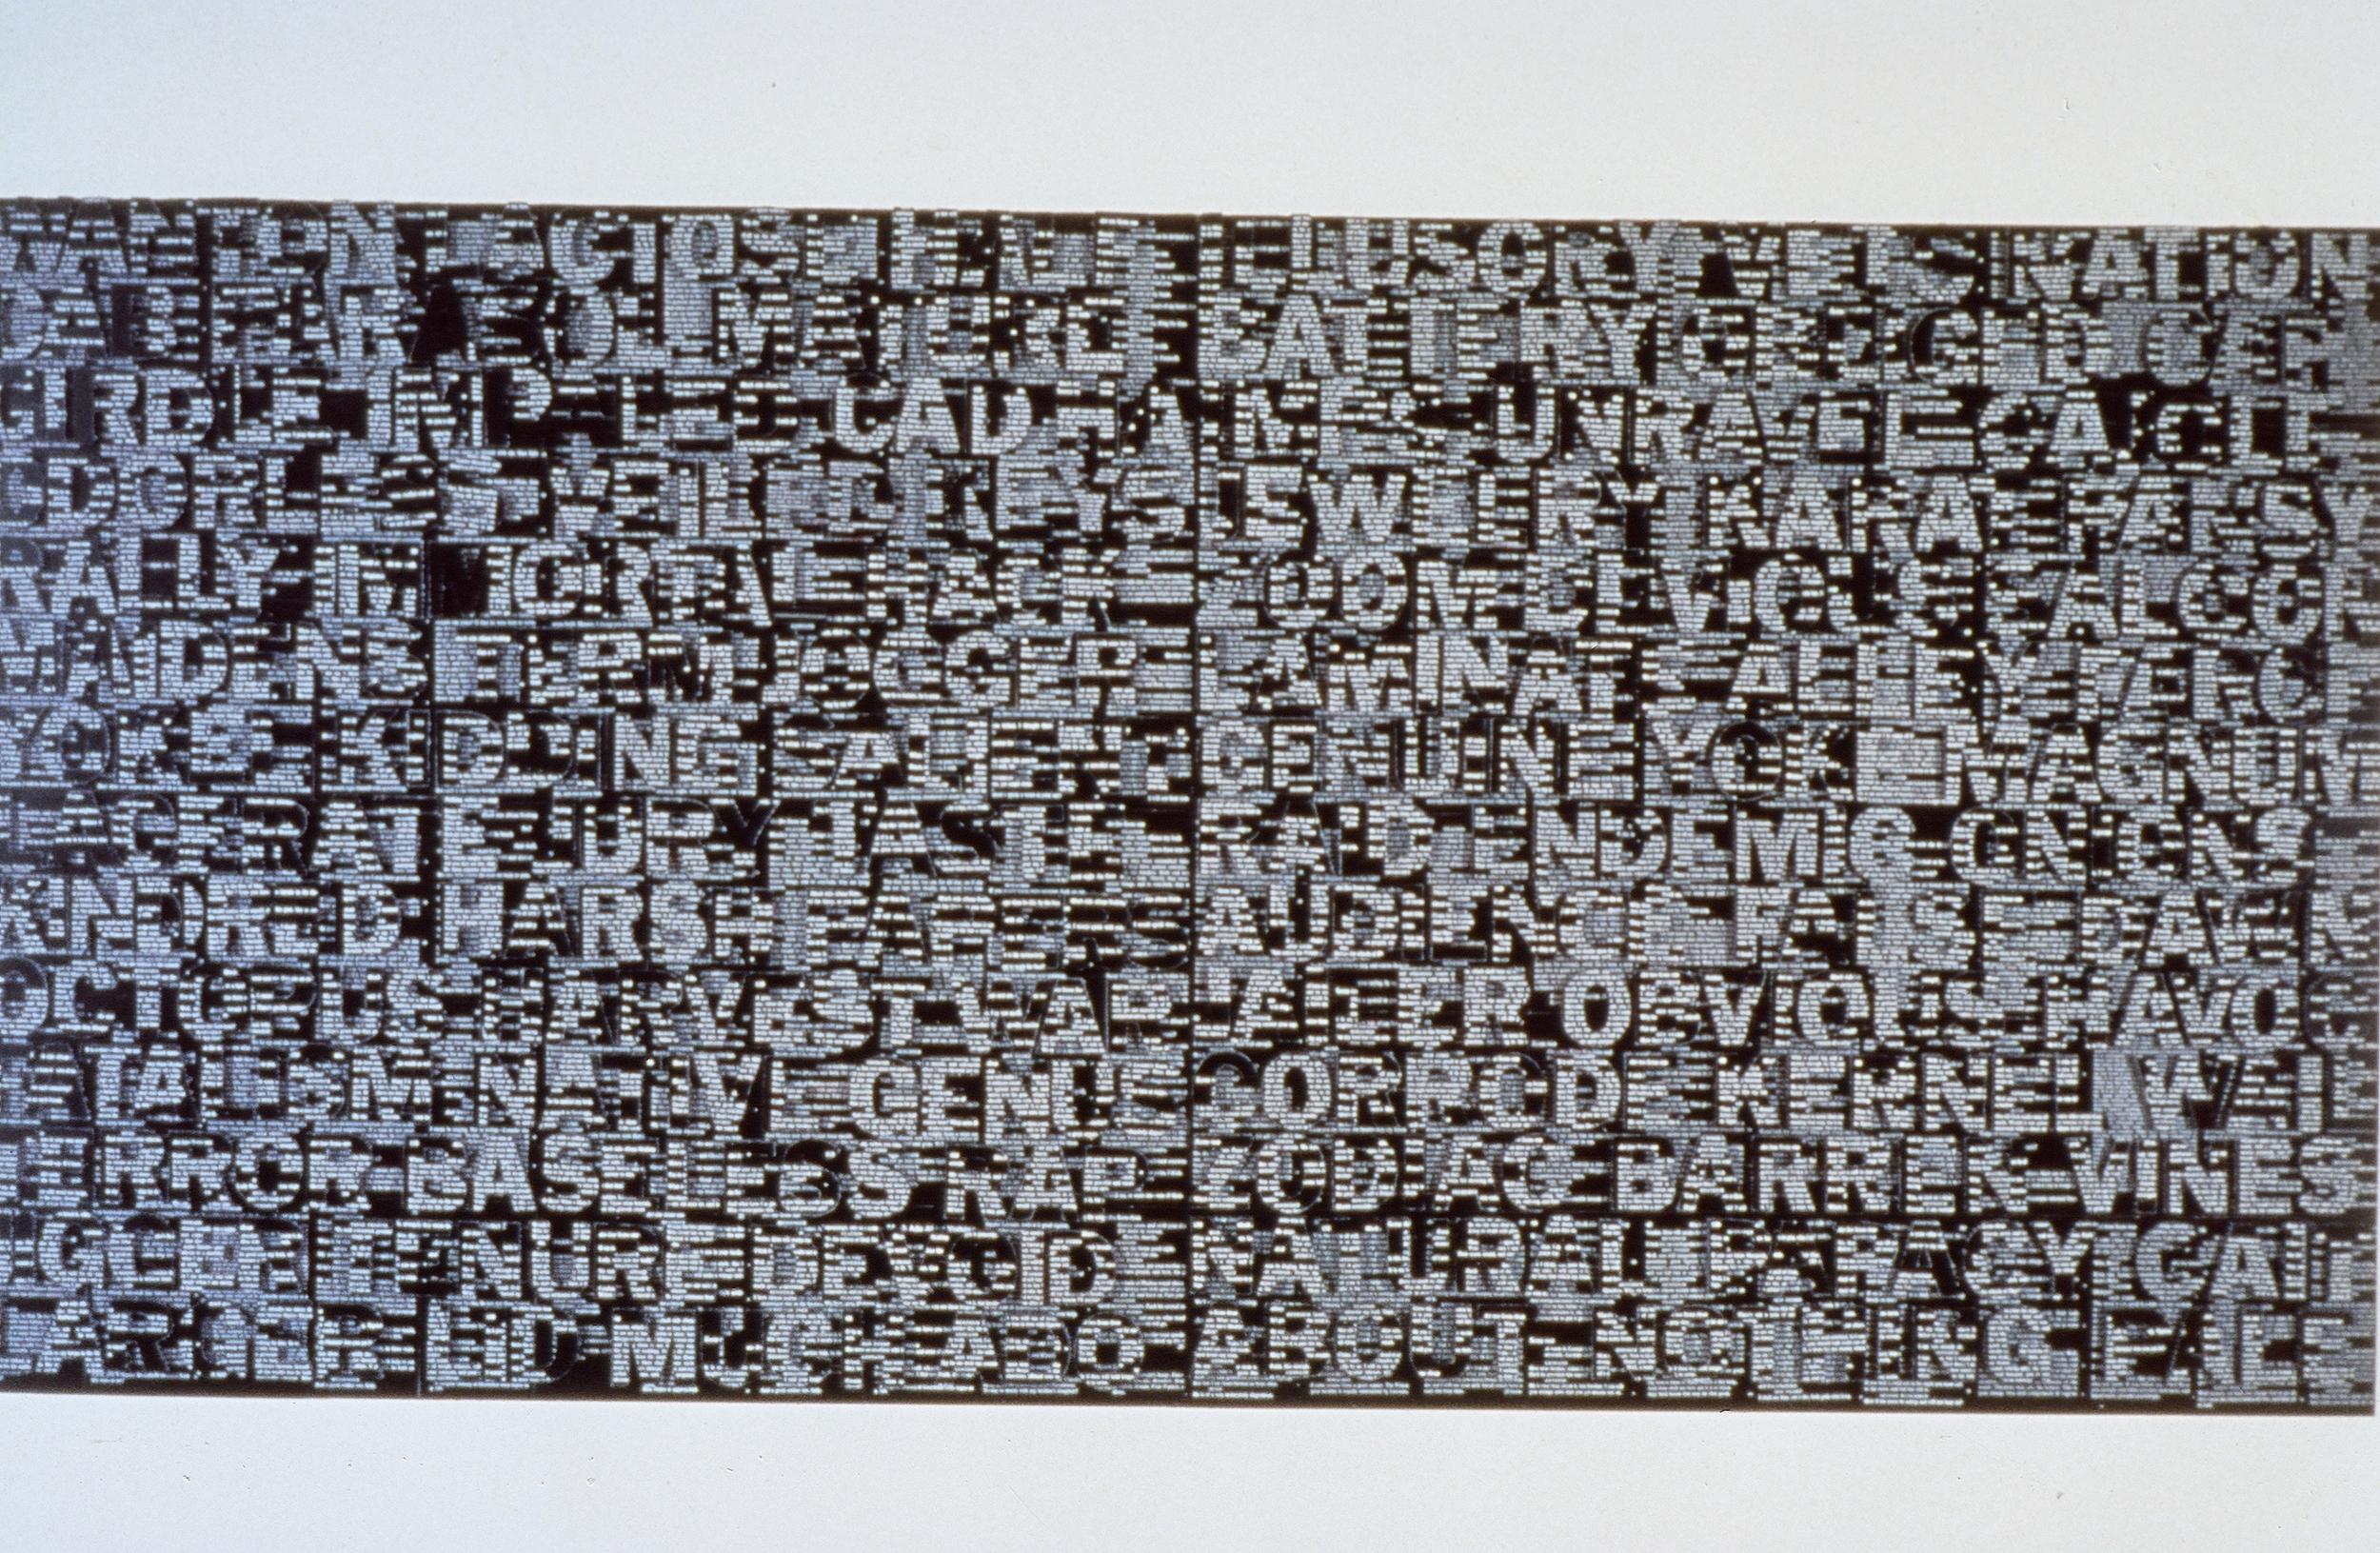 """Wanton & Illusory  A Play on Words Much  Ado about nothing  1997  48"""" x 48"""" each  (More pieces silimar to this in different styles)"""